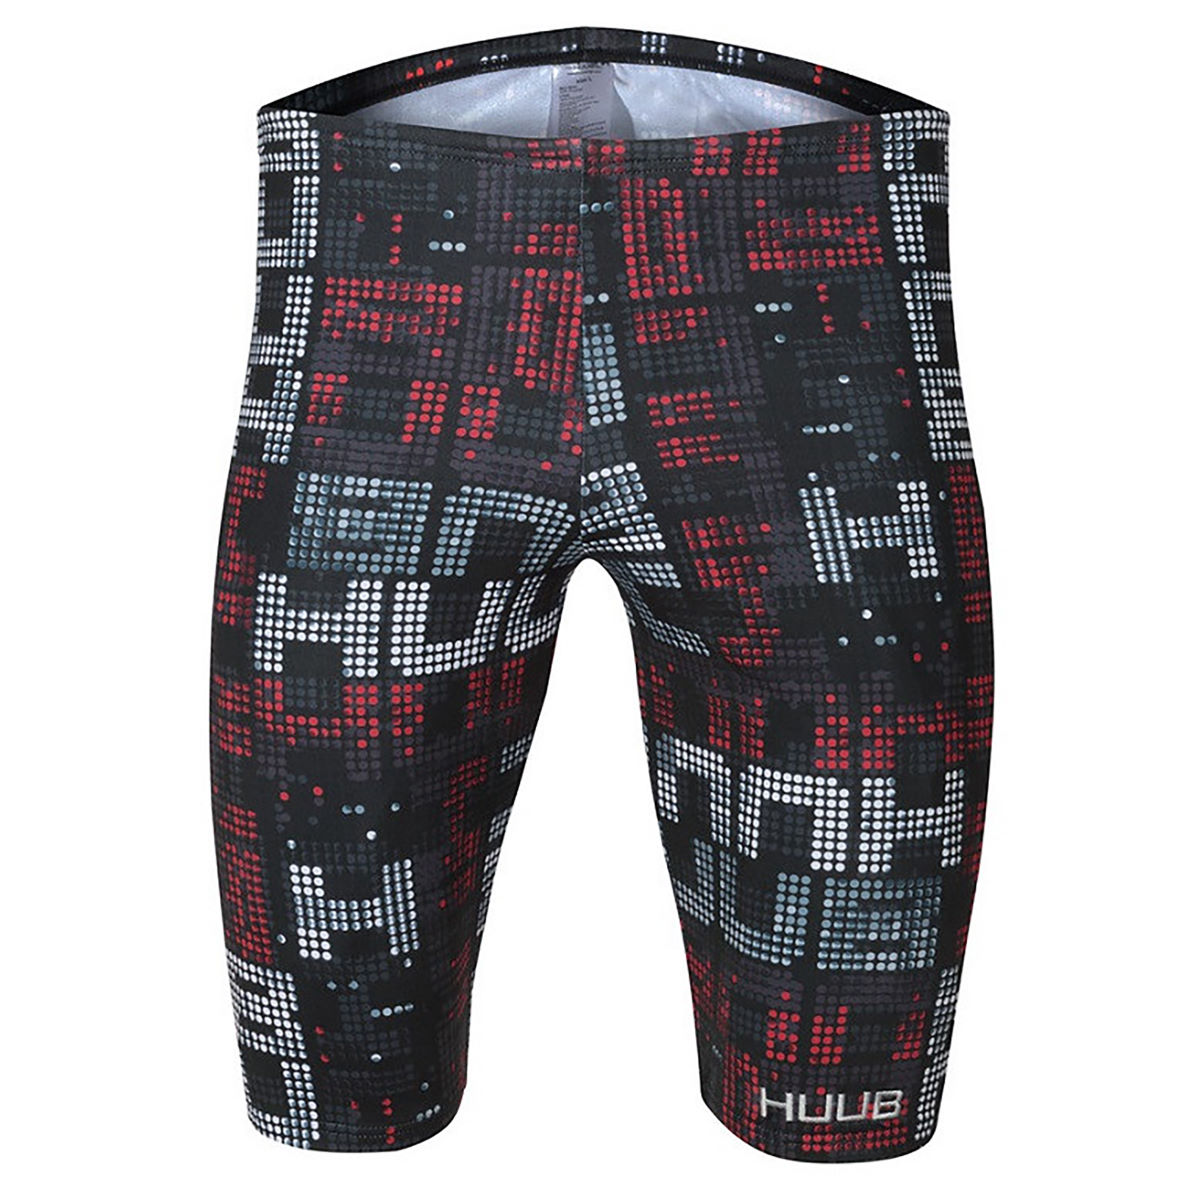 Jammer HUUB Clubland - Small Black/White/Red Maillots de bain Adulte